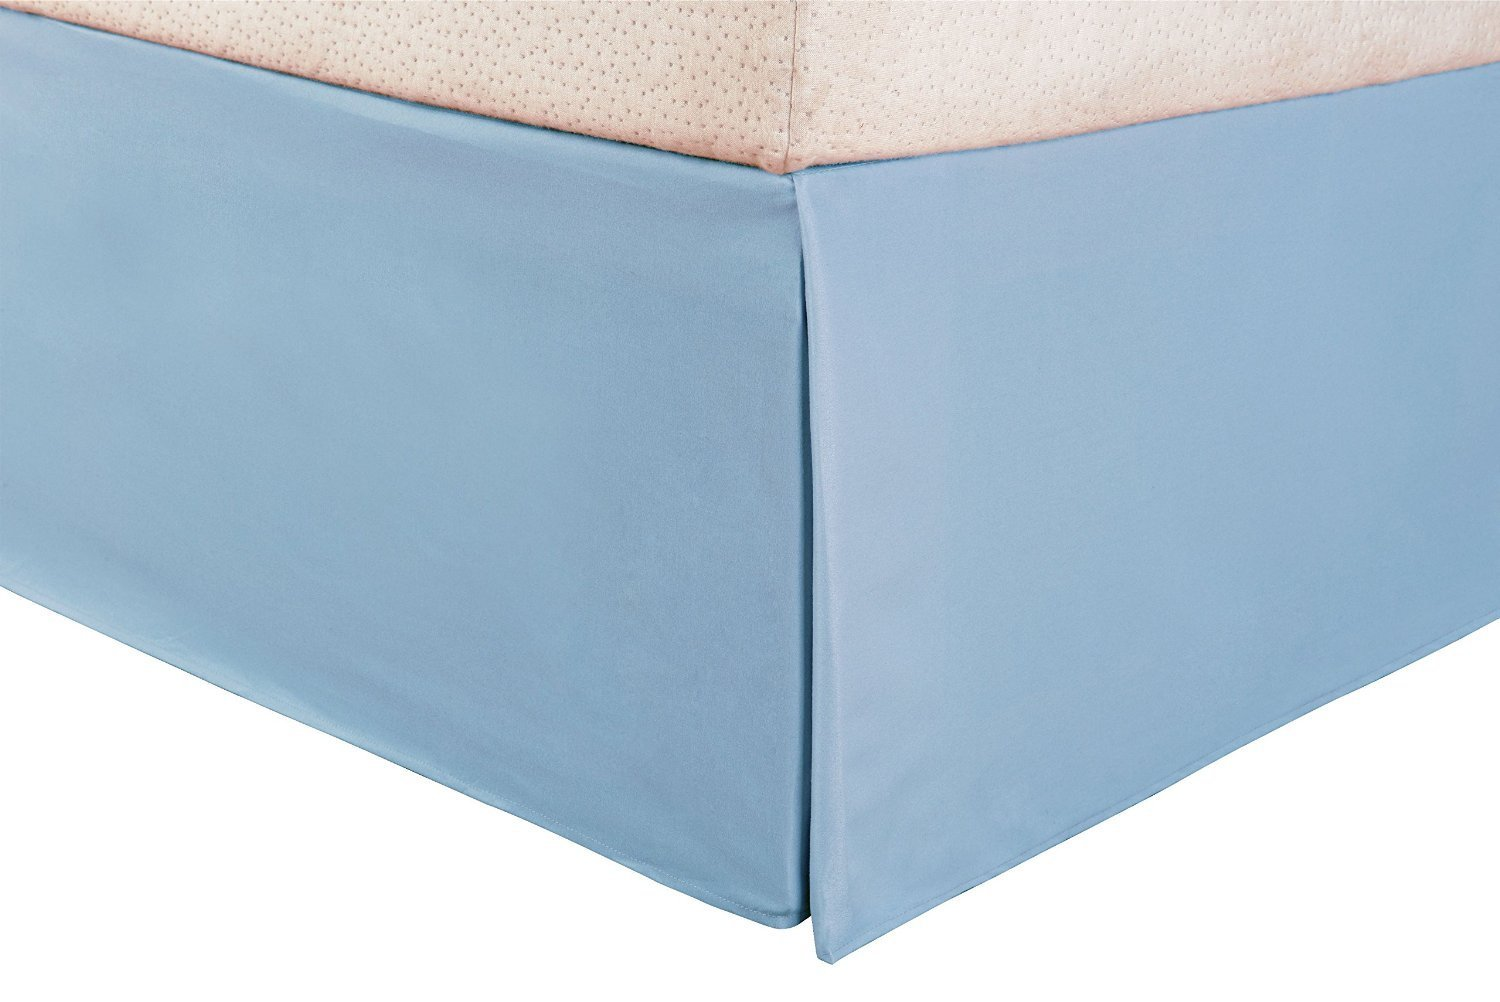 SRP Bedding Real 210 Thread Count Split Corner Bed Skirt Dust Ruffle King Size Solid Light Blue 9 inches Drop Egyptian Cotton Quality Wrinkle /& Fade Resistant